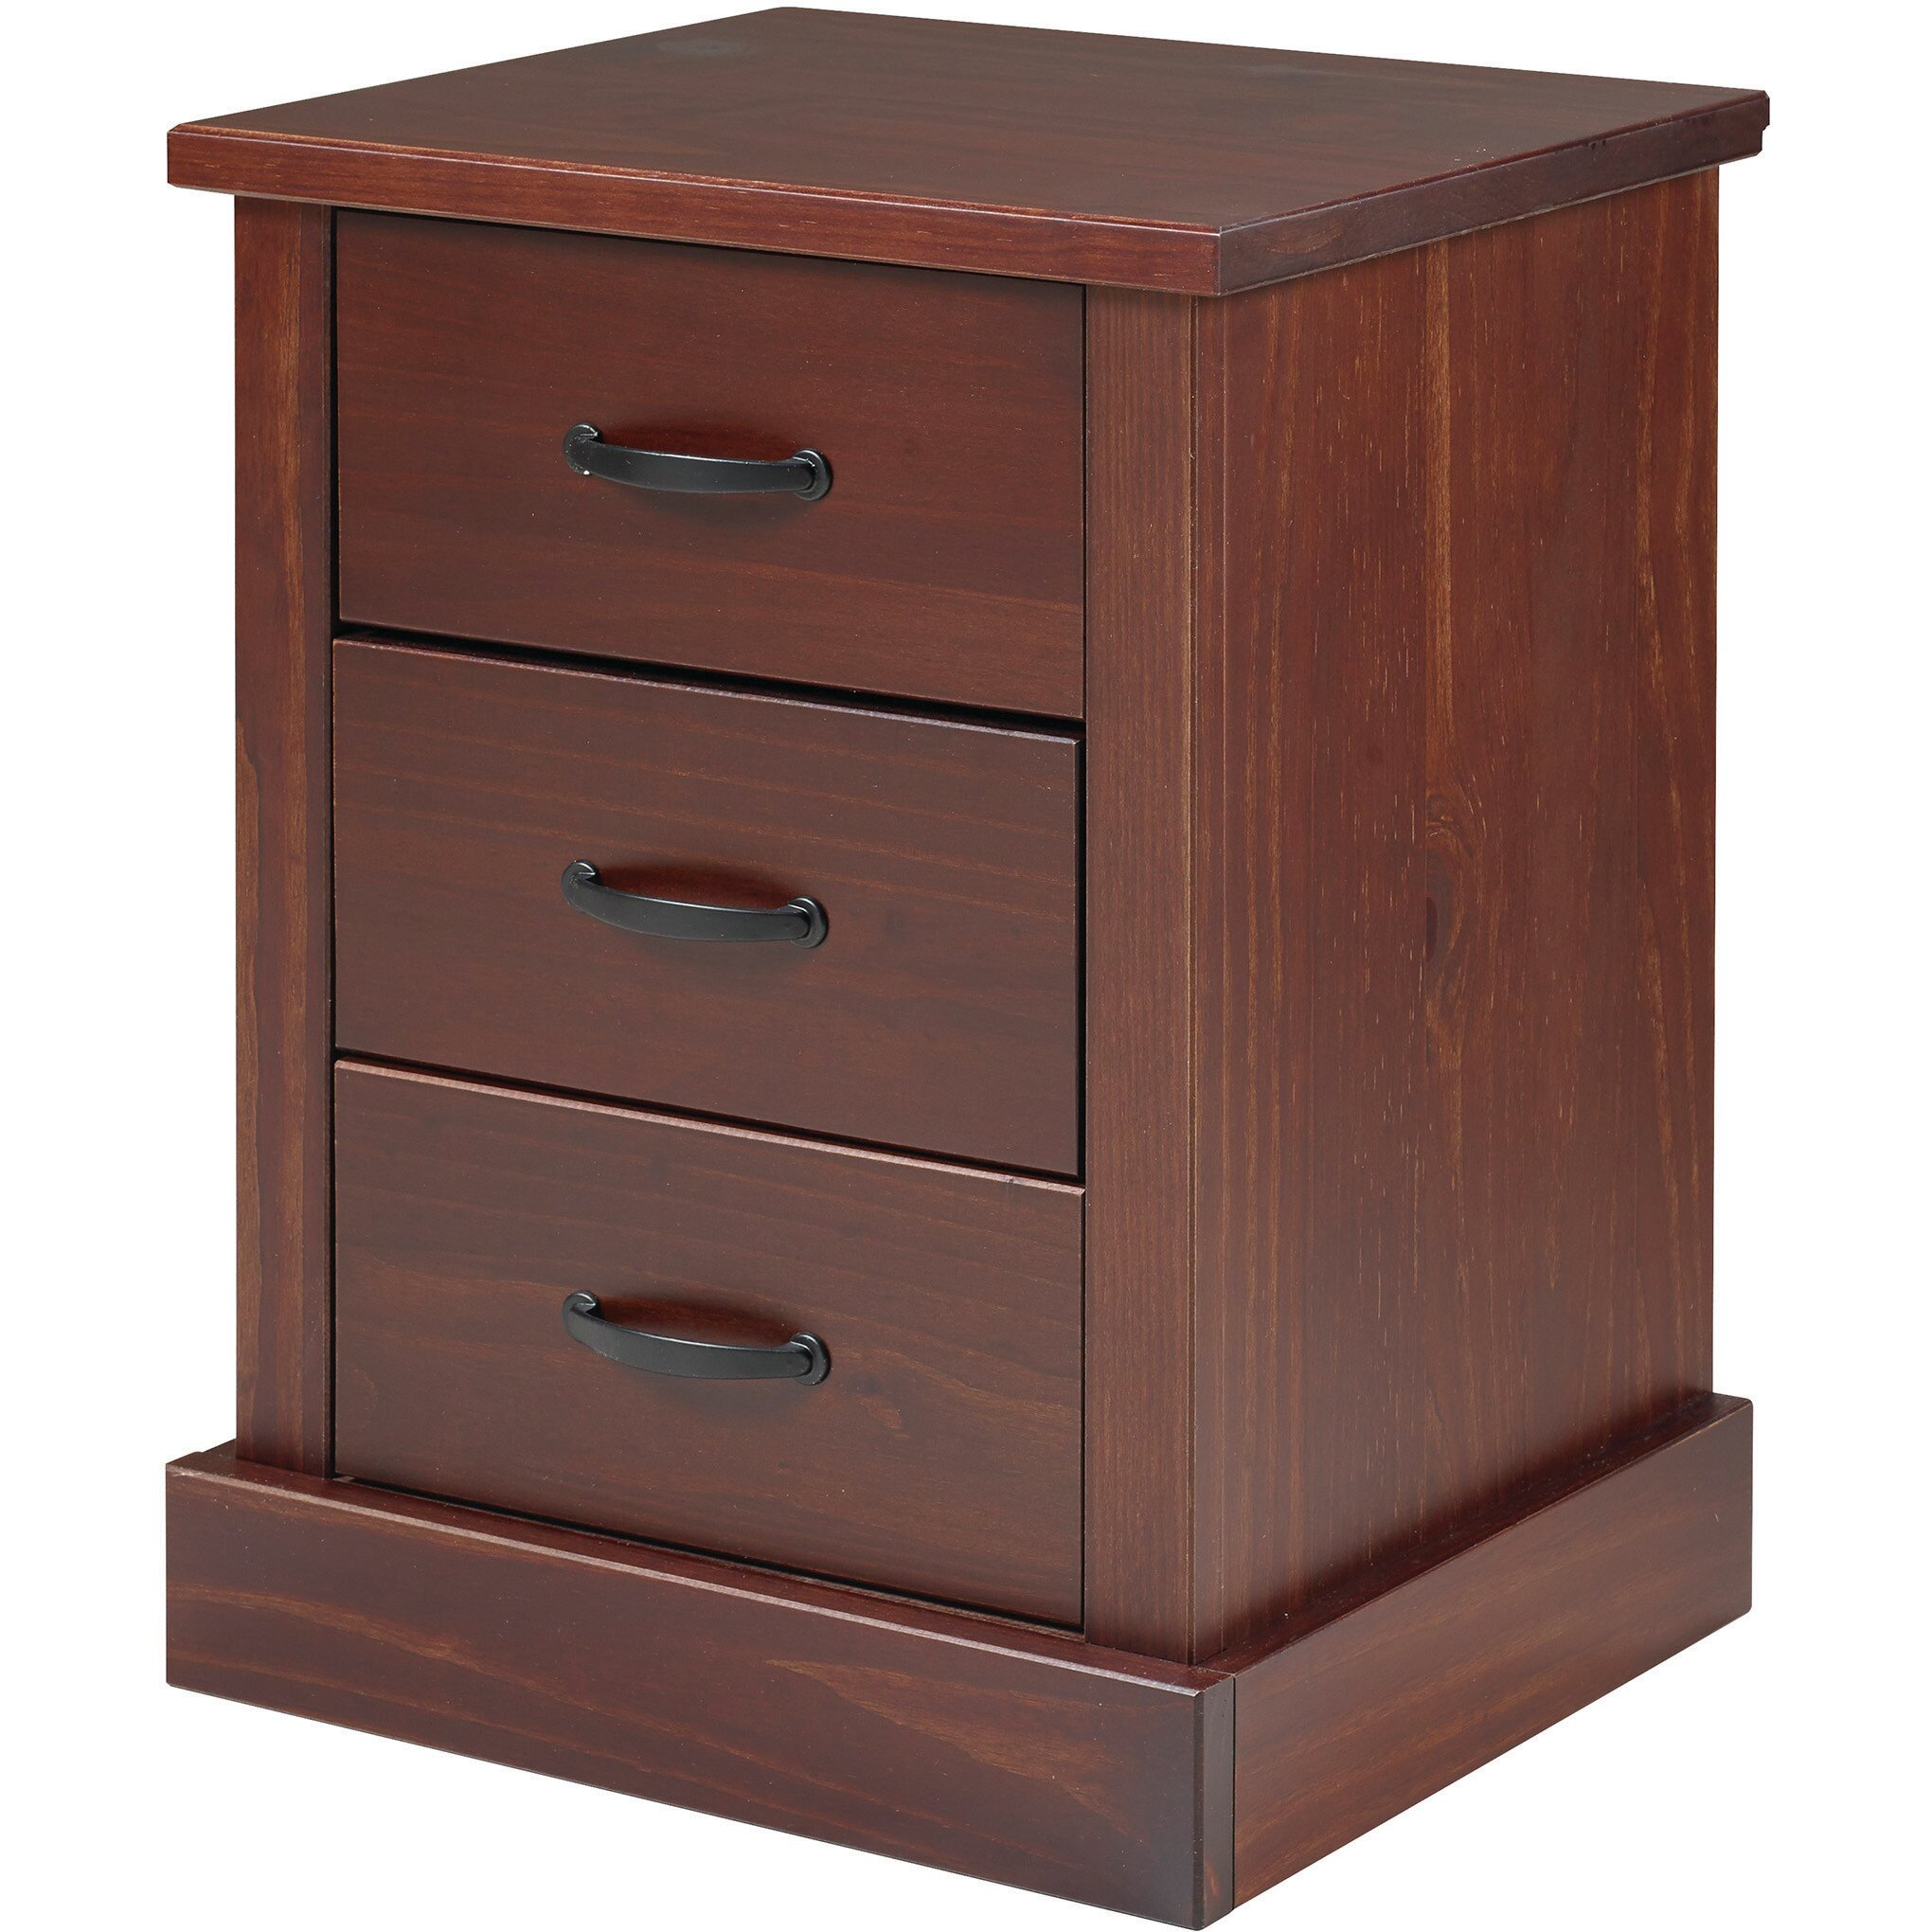 Just Cabinets Wyatt 3 Drawer Nightstand Reviews